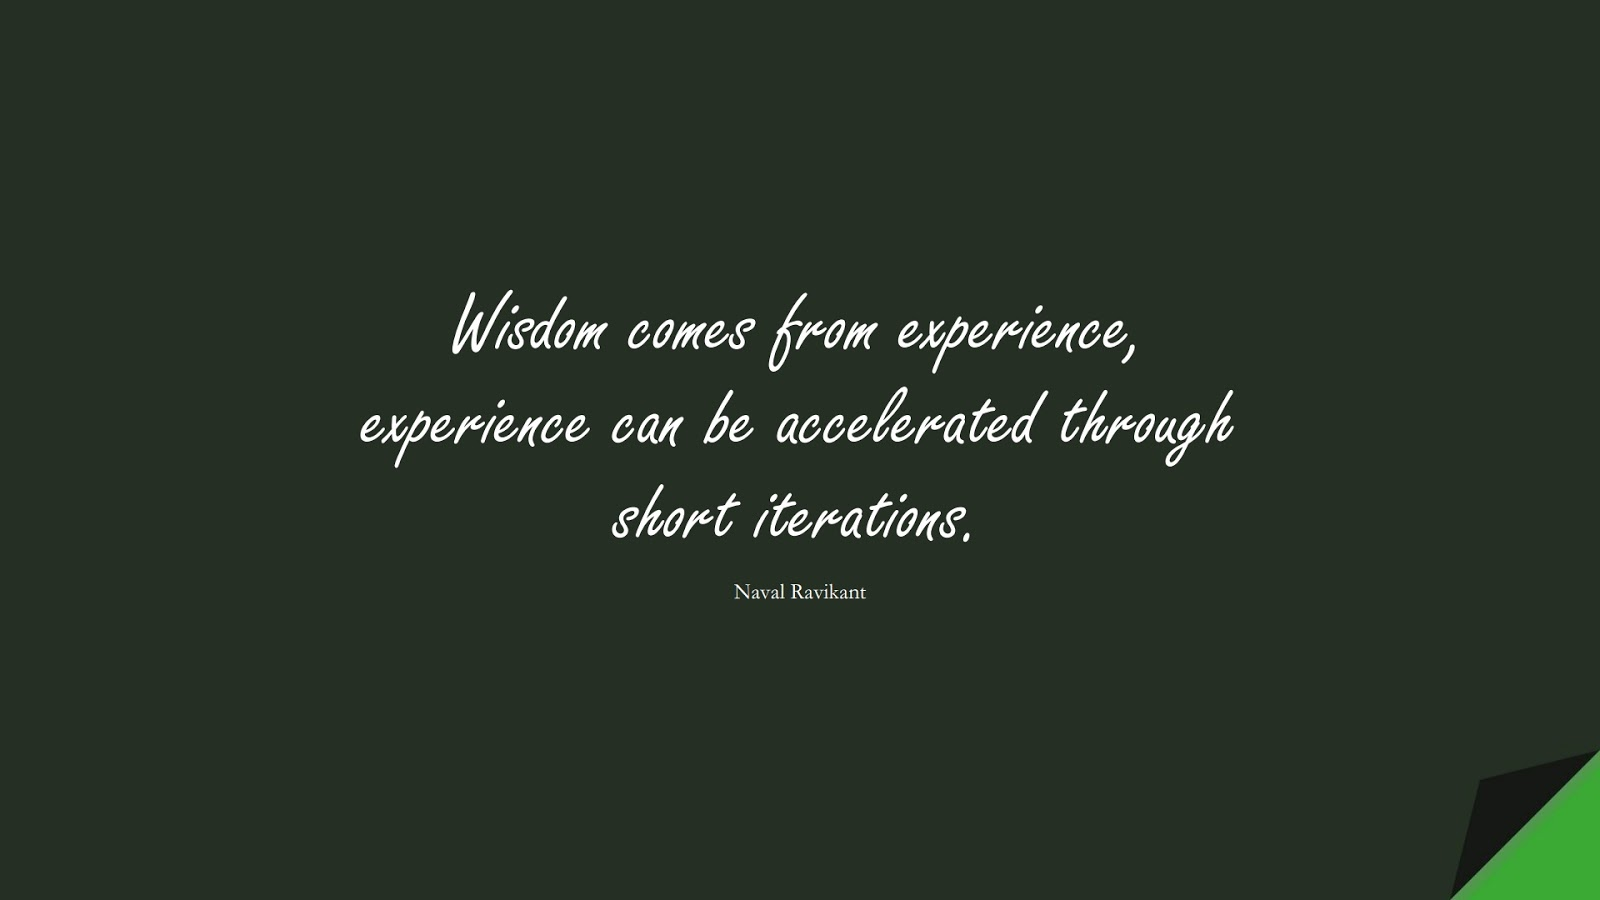 Wisdom comes from experience, experience can be accelerated through short iterations. (Naval Ravikant);  #WordsofWisdom